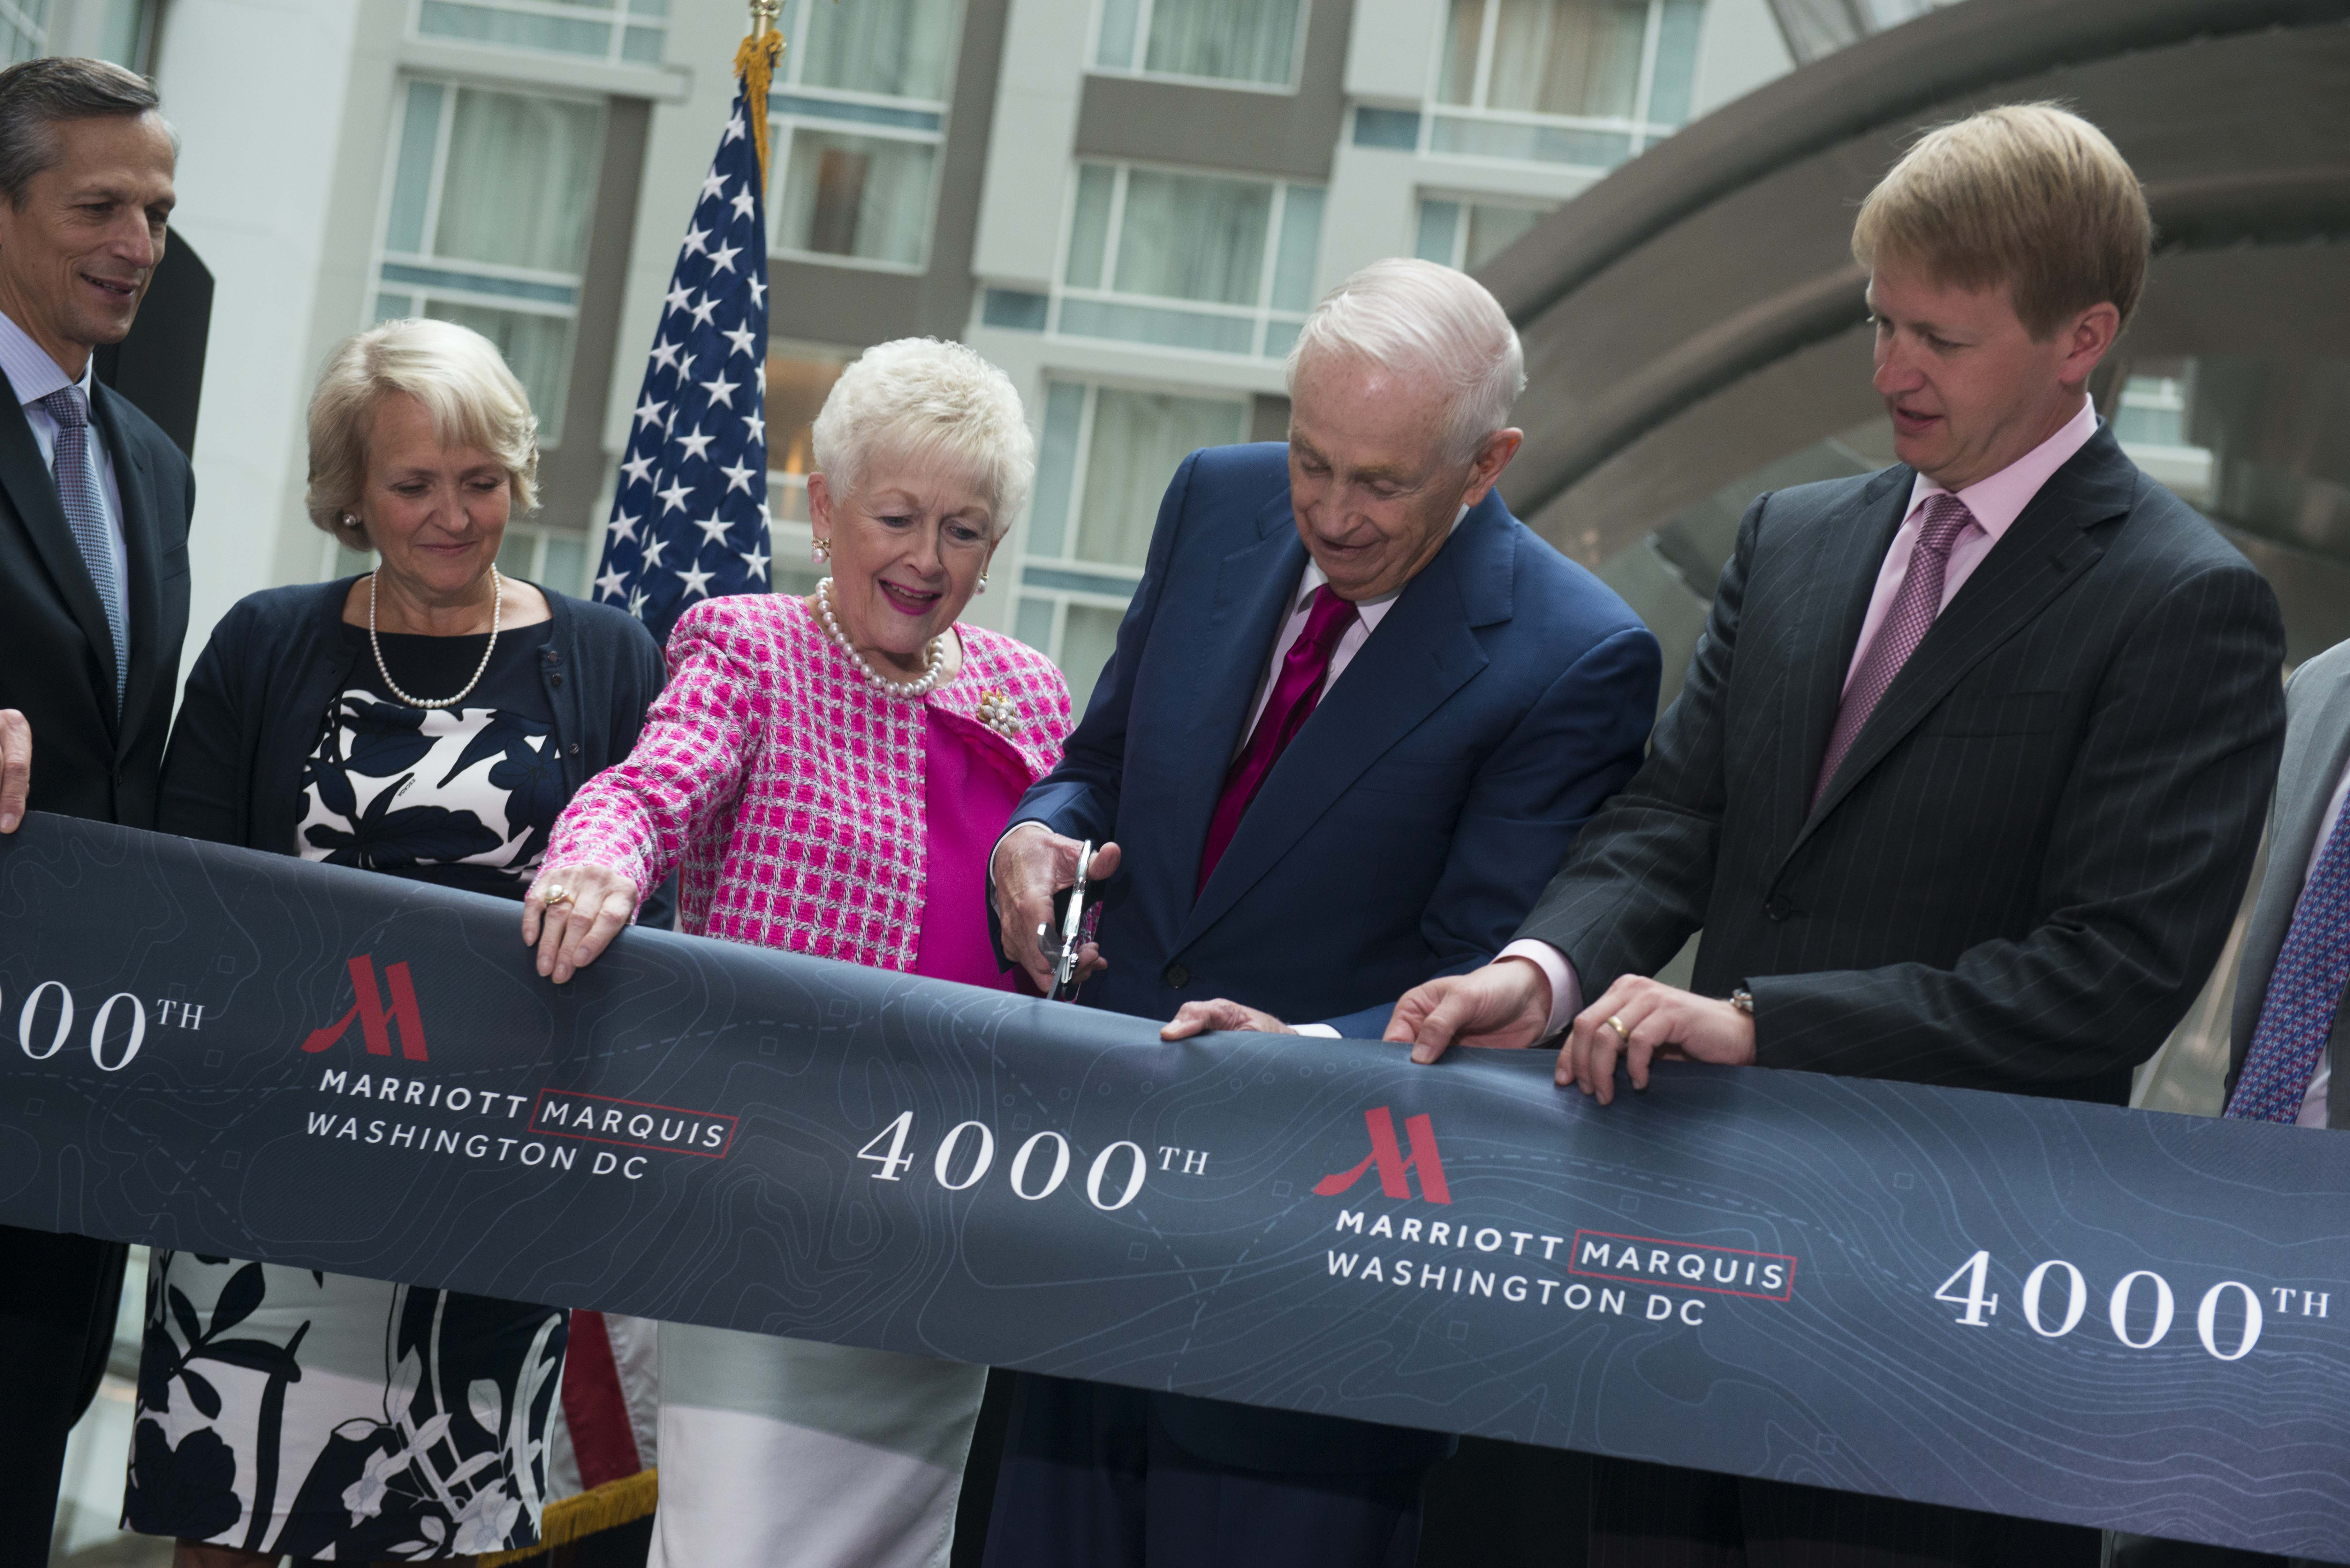 Bill Marriott and his wife, Donna, cut the ribbon of the Marriott Marquis in D.C. along with daughter Debbie and son David.